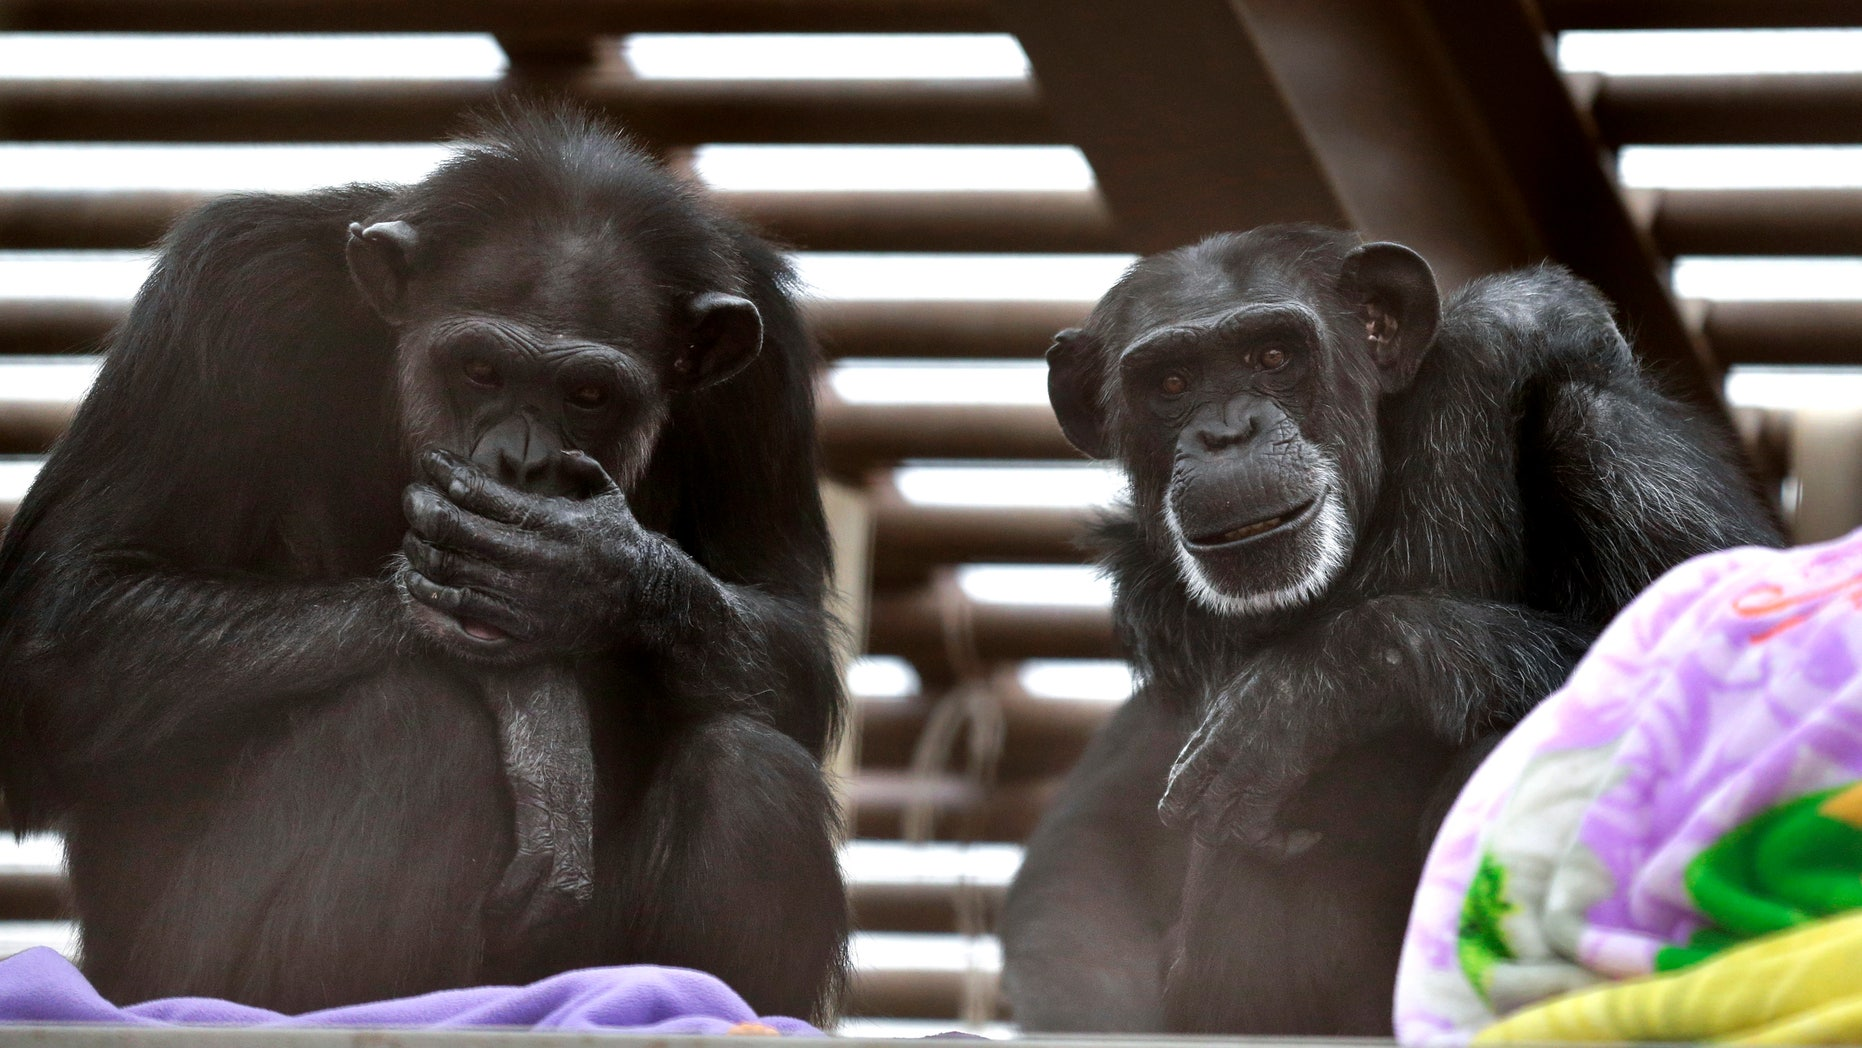 In this photo taken Aug. 8, 2016, Foxie, right, and Annie, left, two chimps who live at Chimpanzee Sanctuary Northwest near Cle Elum, Wash., sit on a platform during a party for Foxie's 40th birthday. Sanctuaries around the country are preparing for an influx of retired private lab chimps now that the federal government has stopped backing experiments on humankind's closest relatives.